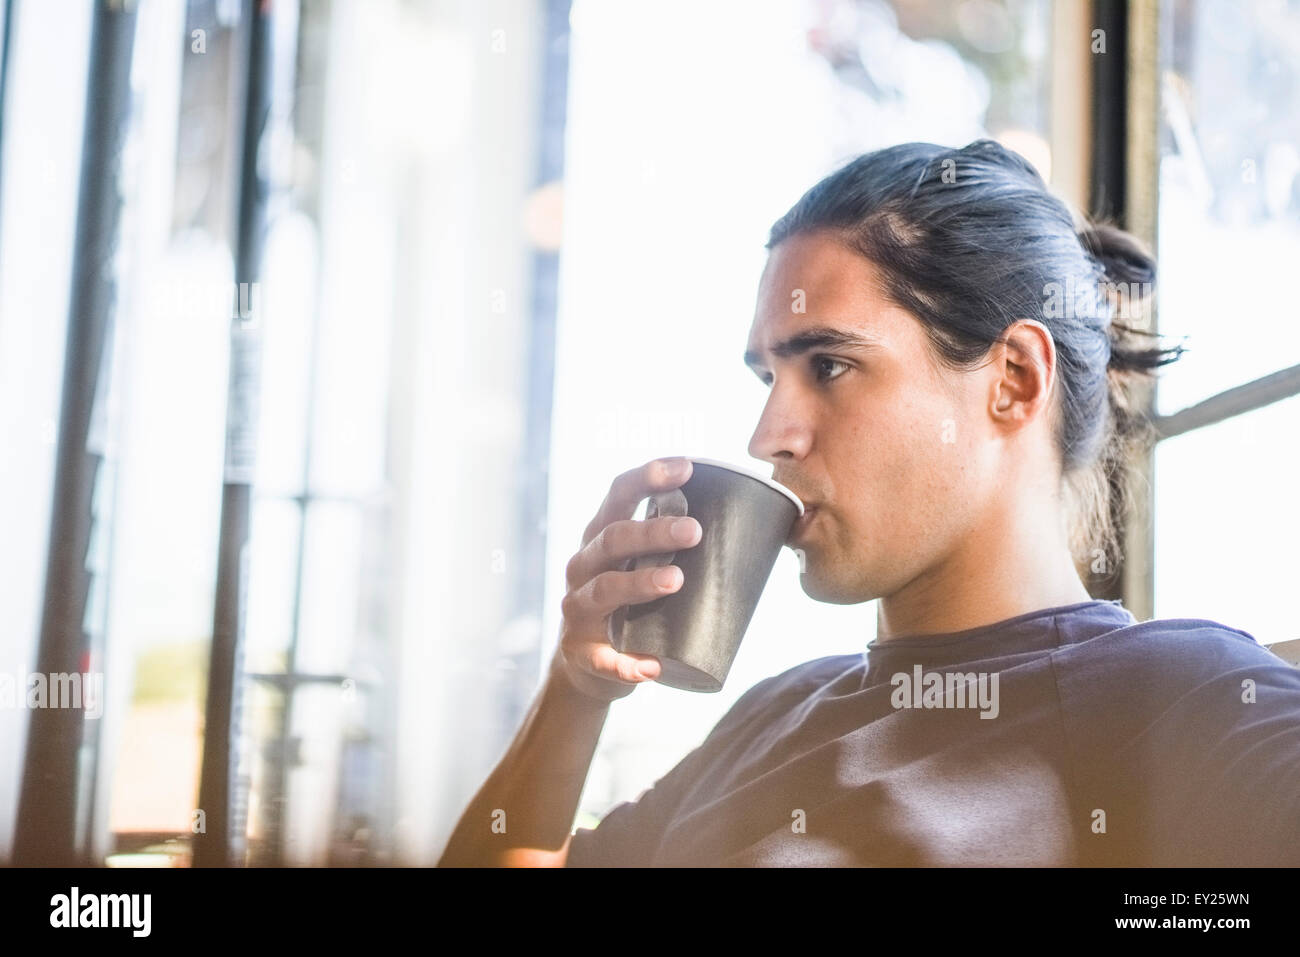 Young man drinking coffee, indoors - Stock Image